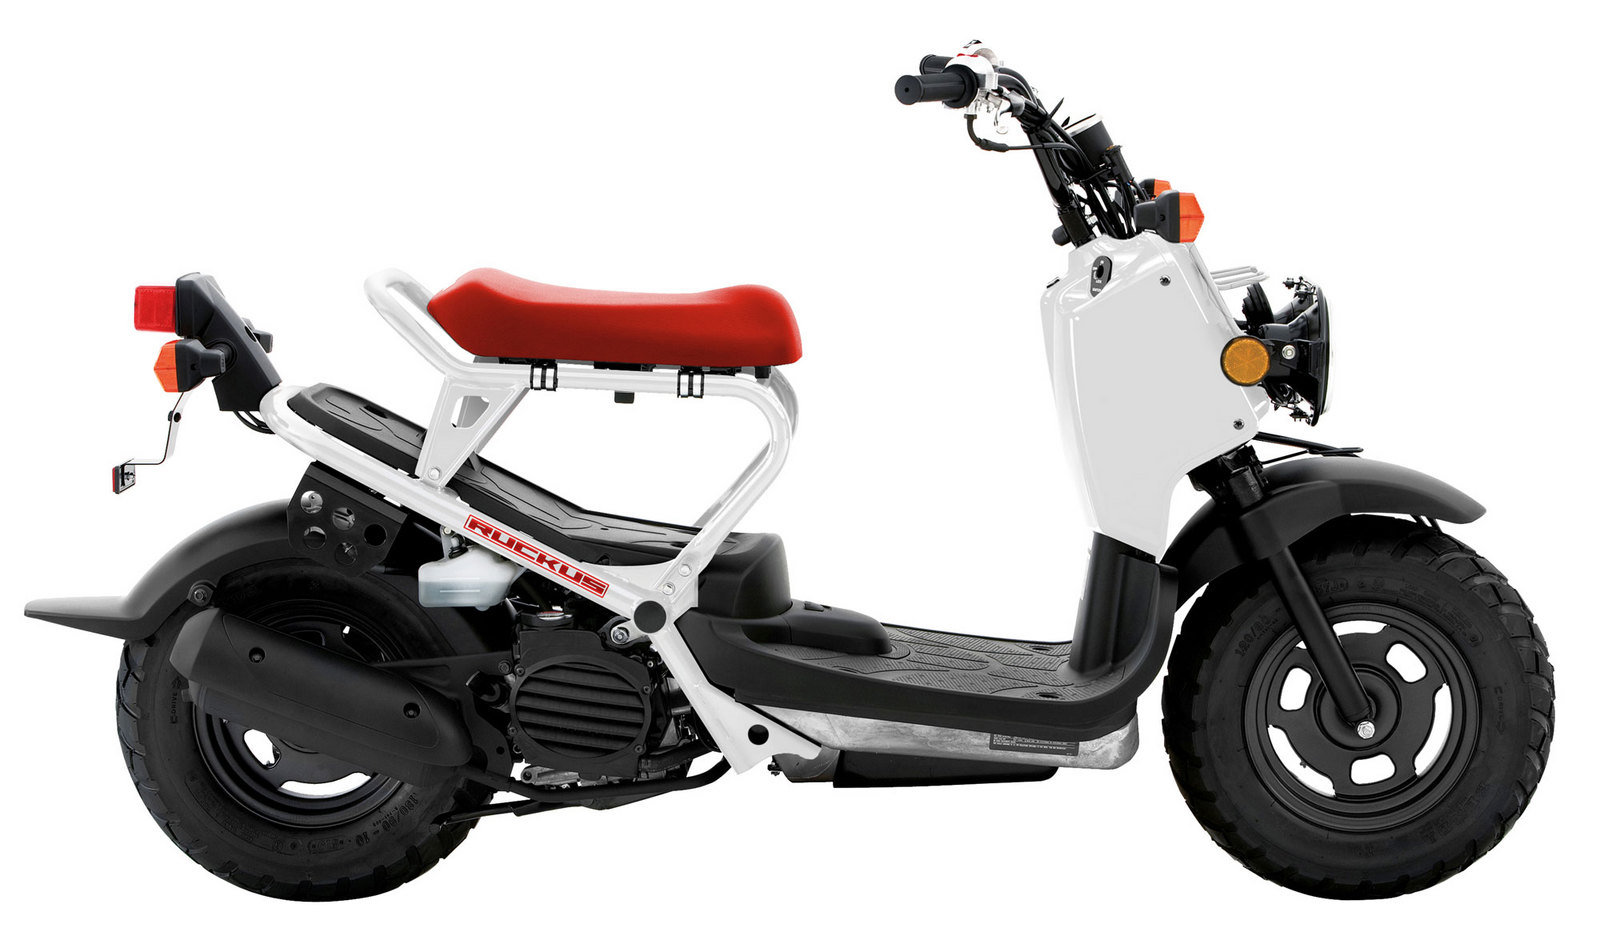 2017 Honda Ruckus >> 2012 Honda Ruckus Review - Top Speed